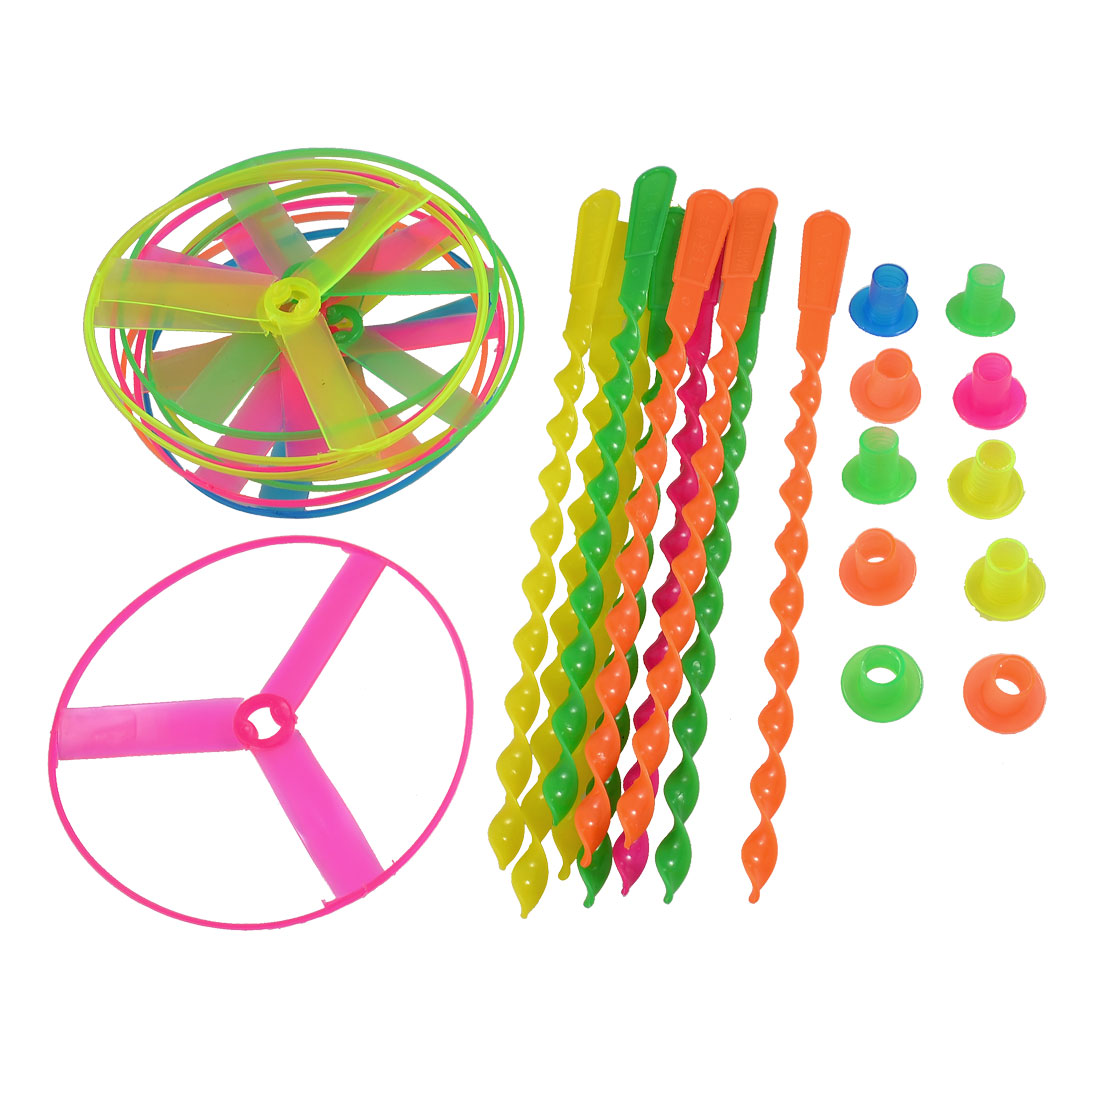 10 Pcs Assorted Color Plastic Spinning Shooter Flying Disc Toys for Children